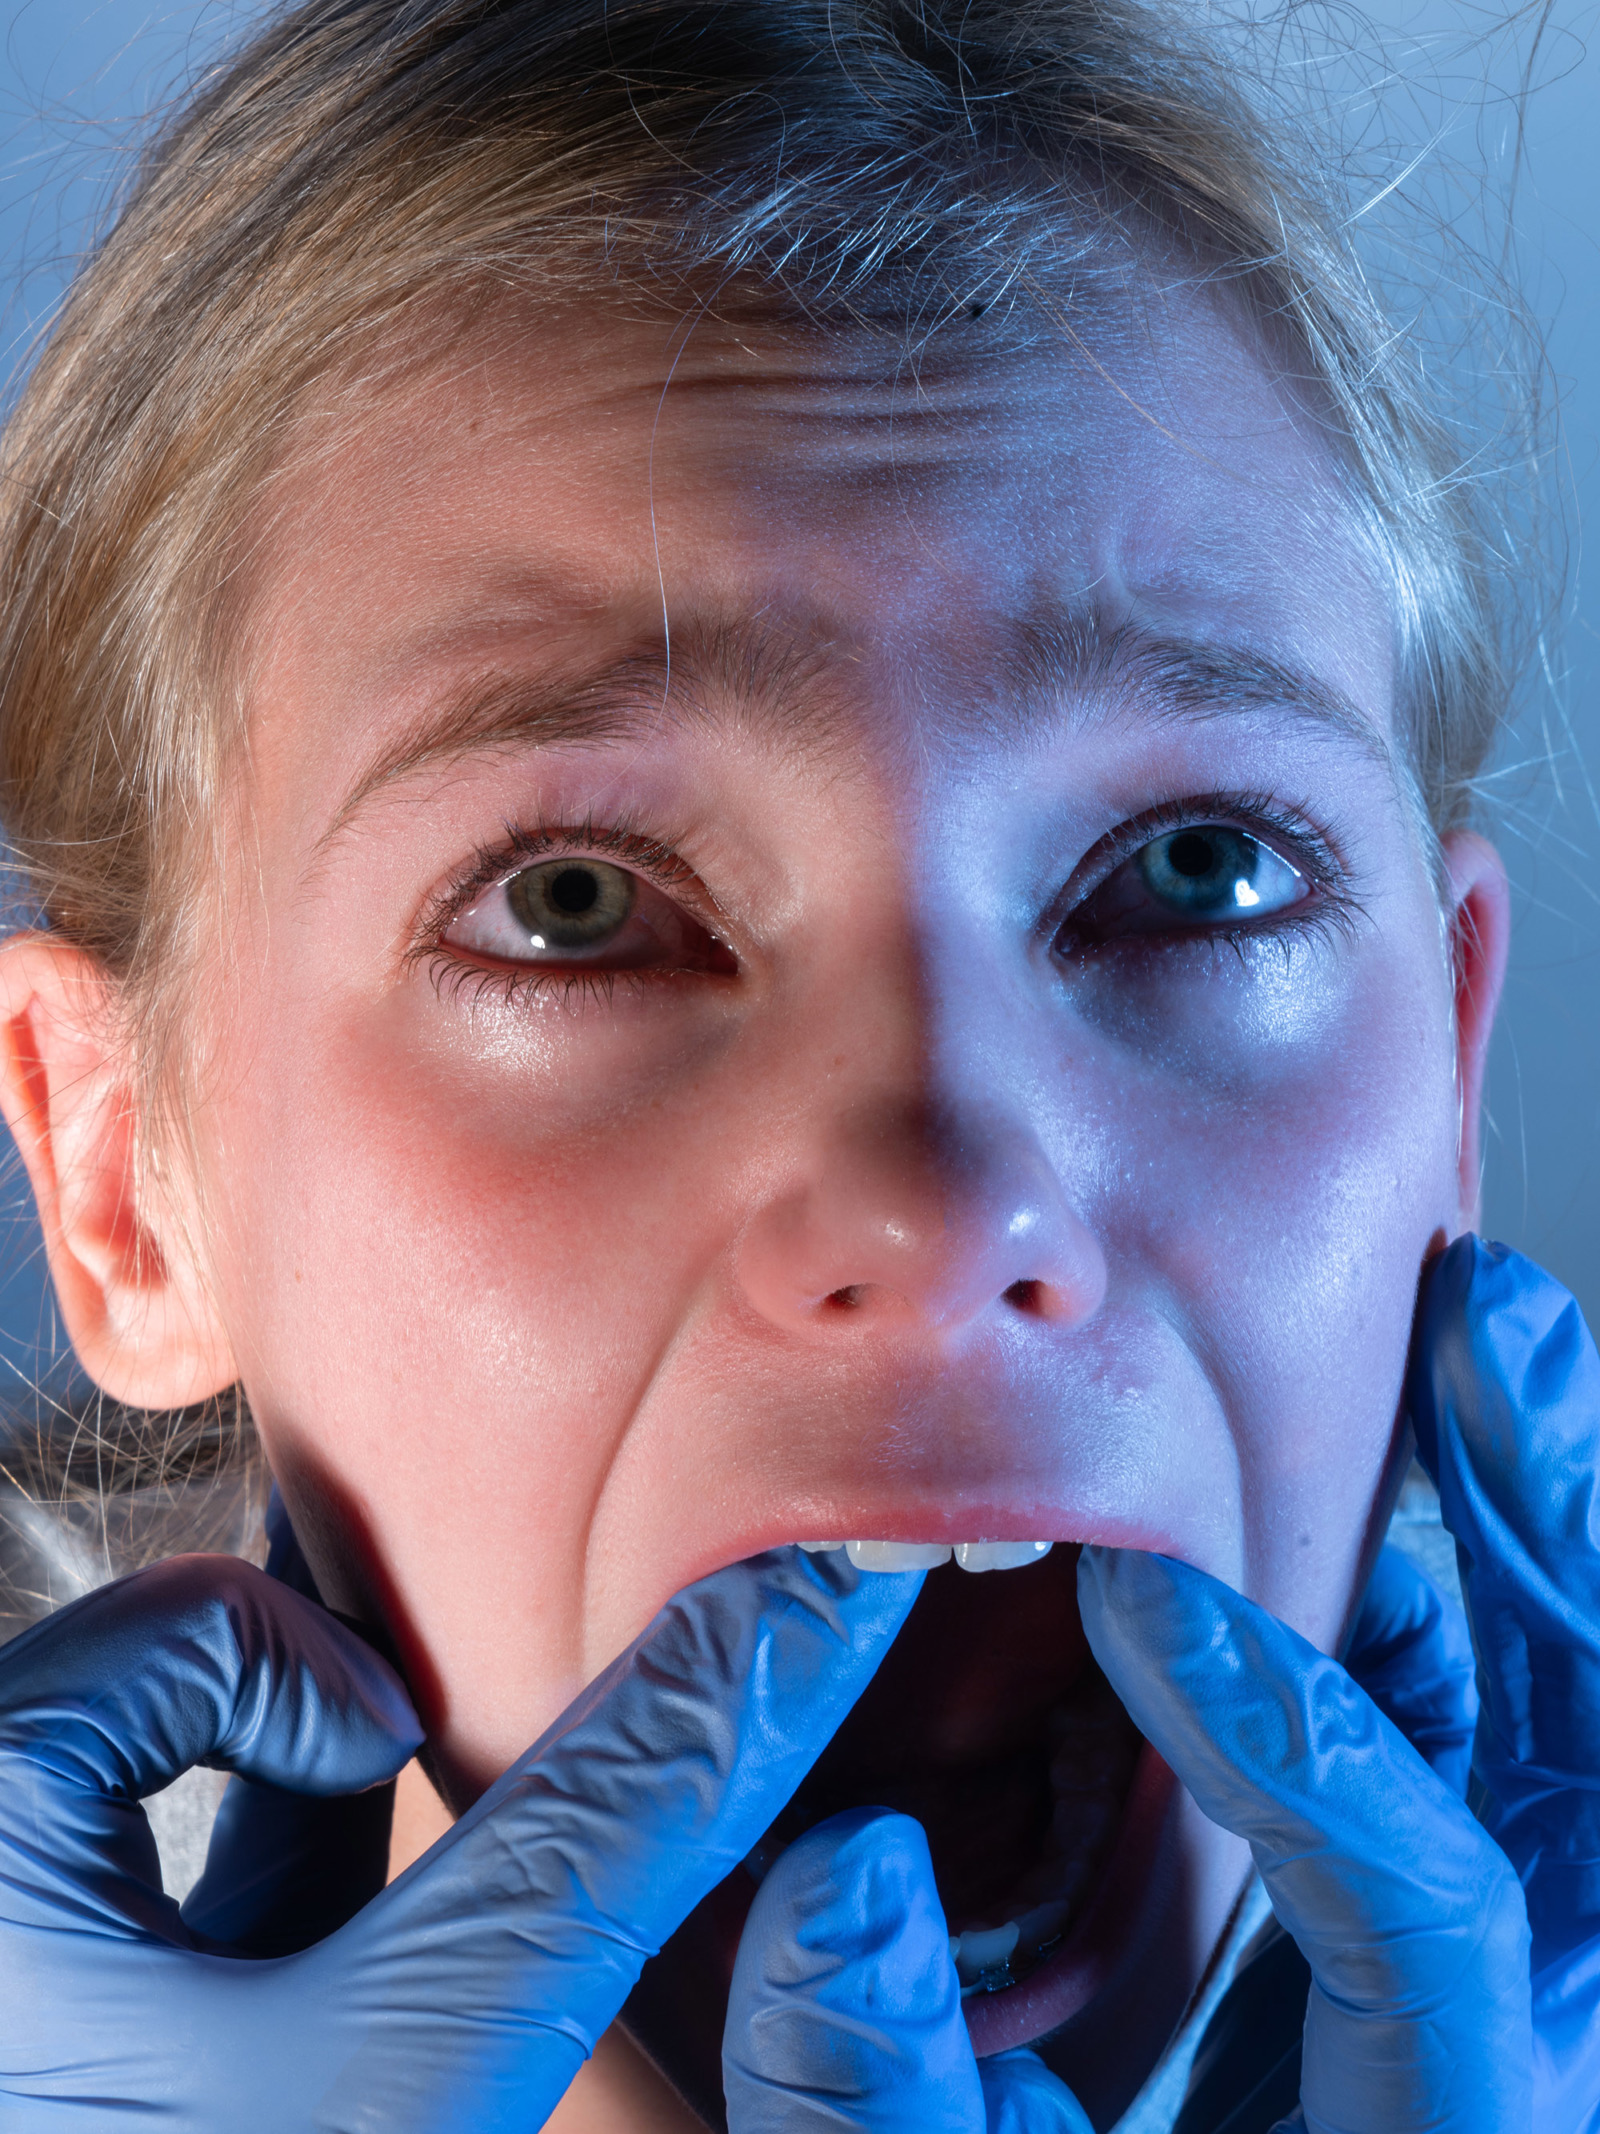 A woman's mouth is hled open by hands dressed in blue latex gloves.